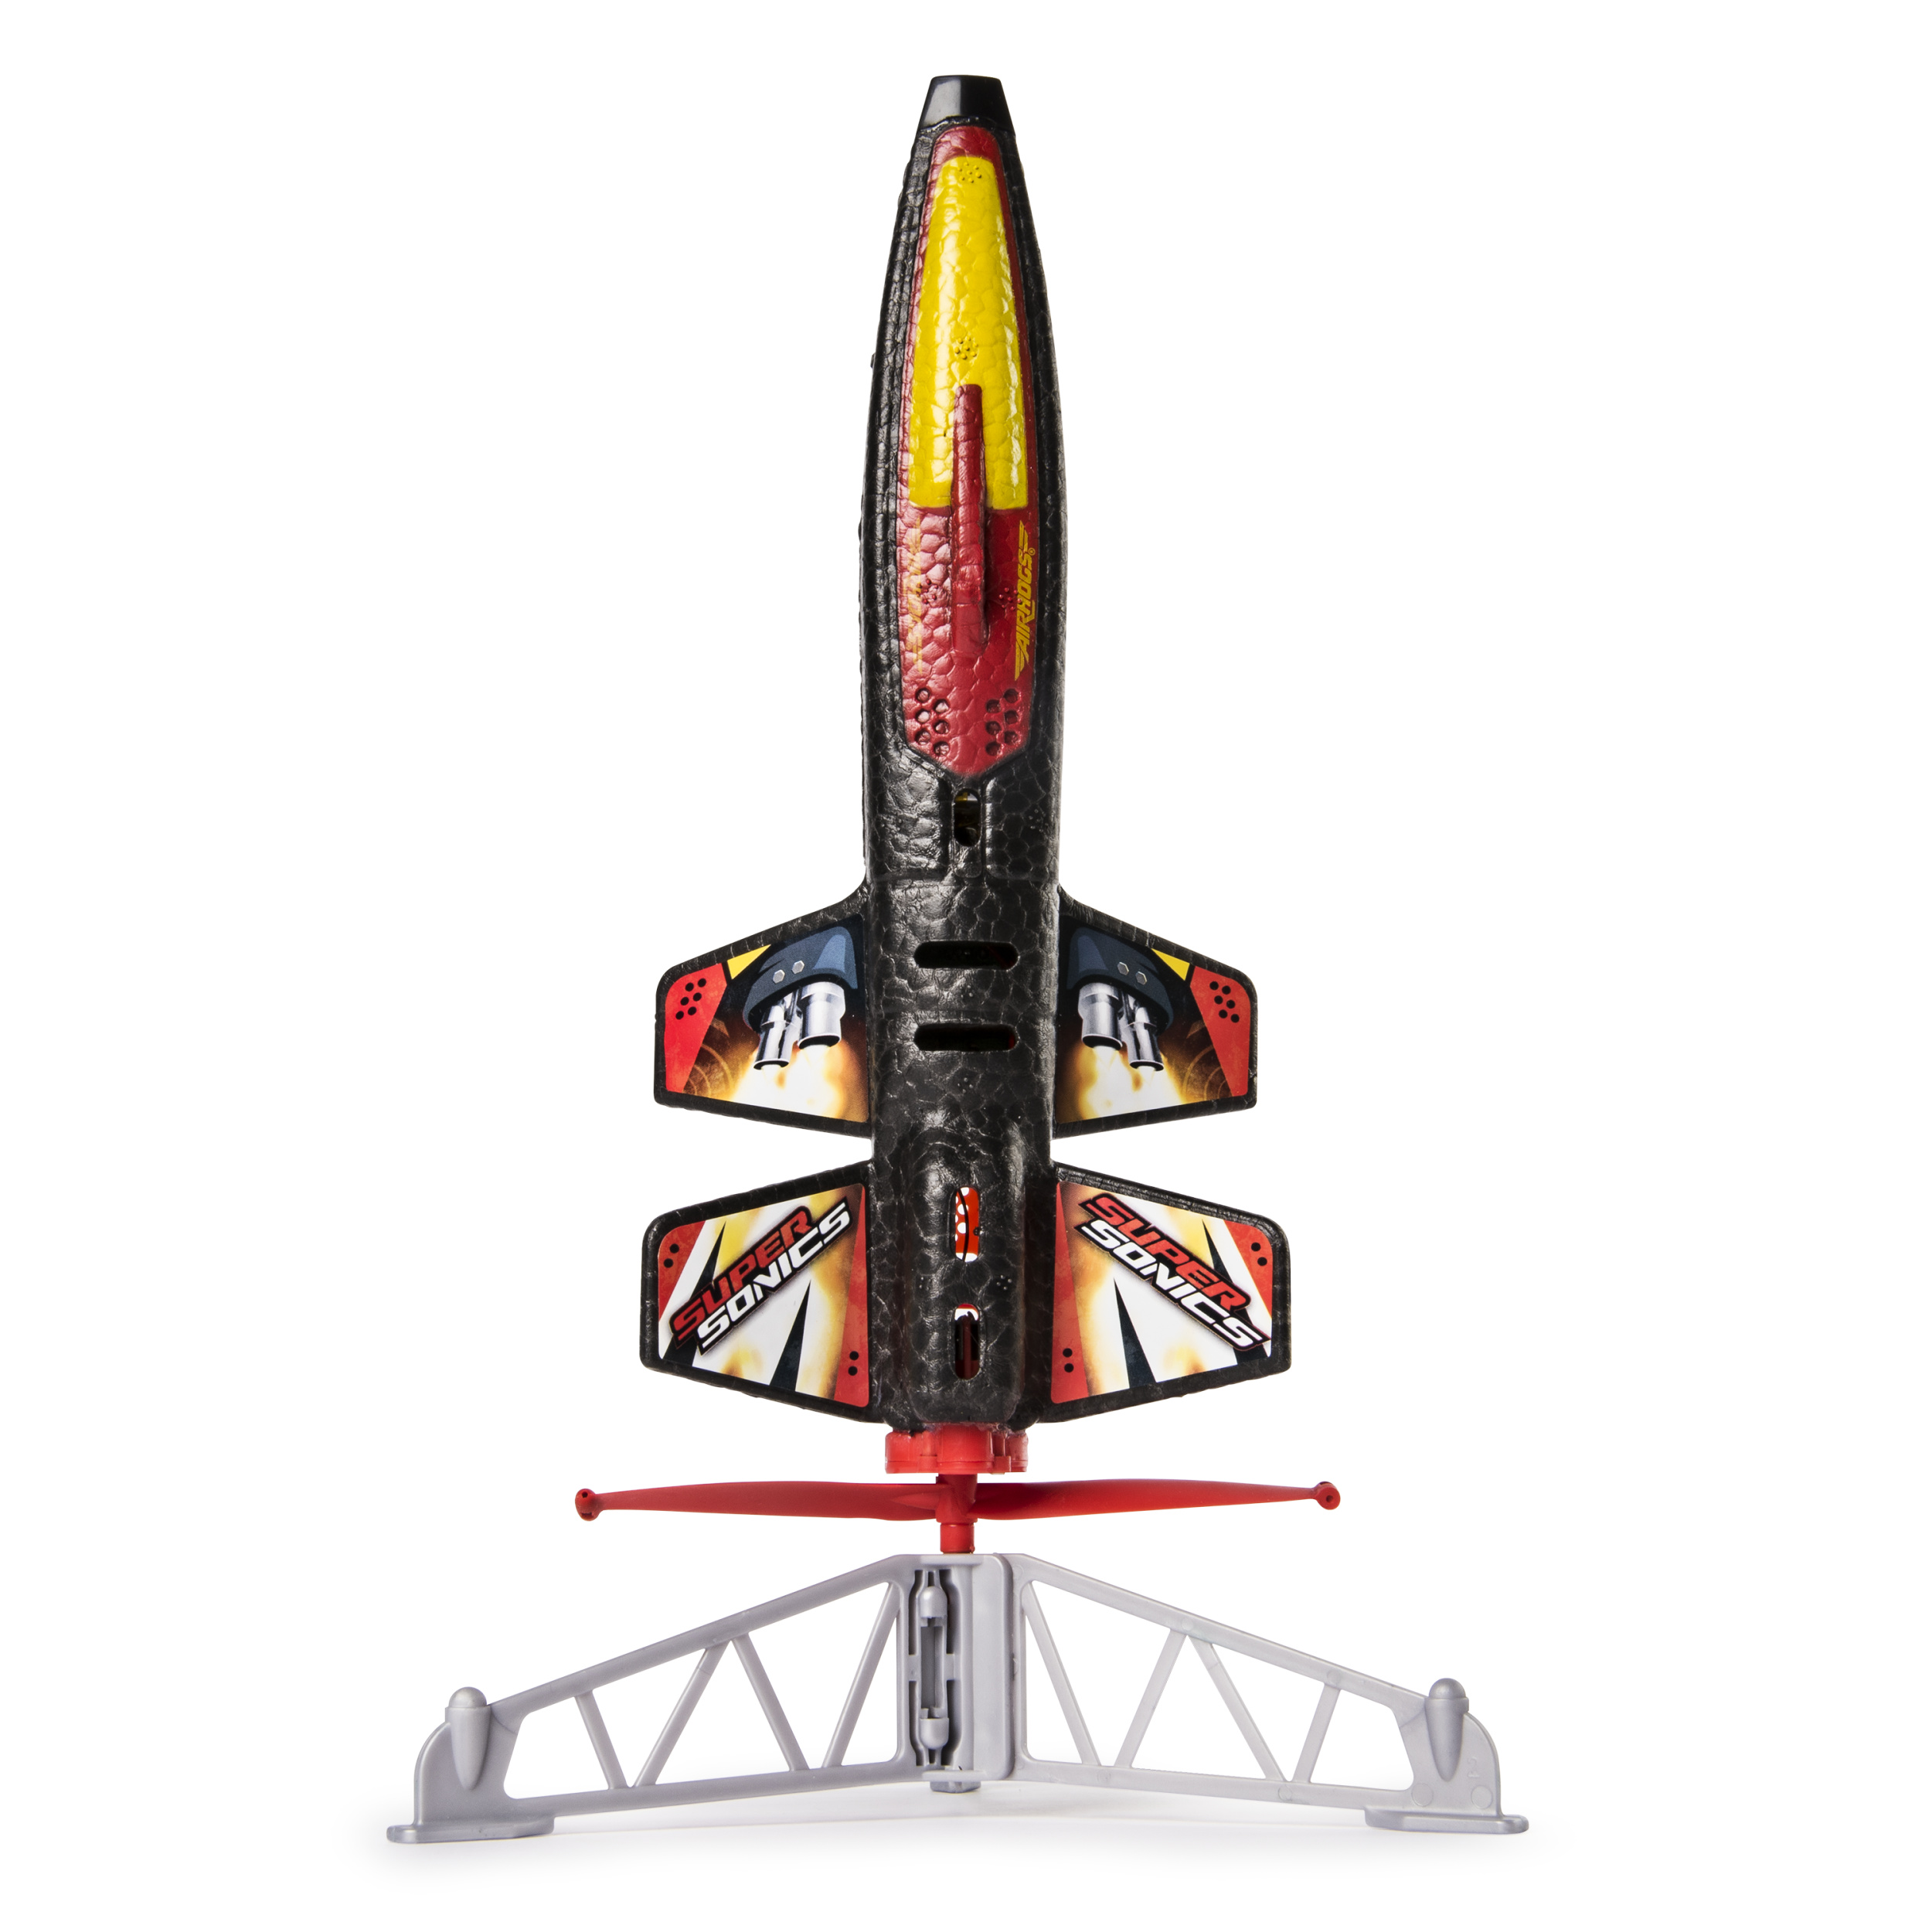 Air Hogs � Sonic Rocket High-flying Motorized Rocket by Spin Master Ltd